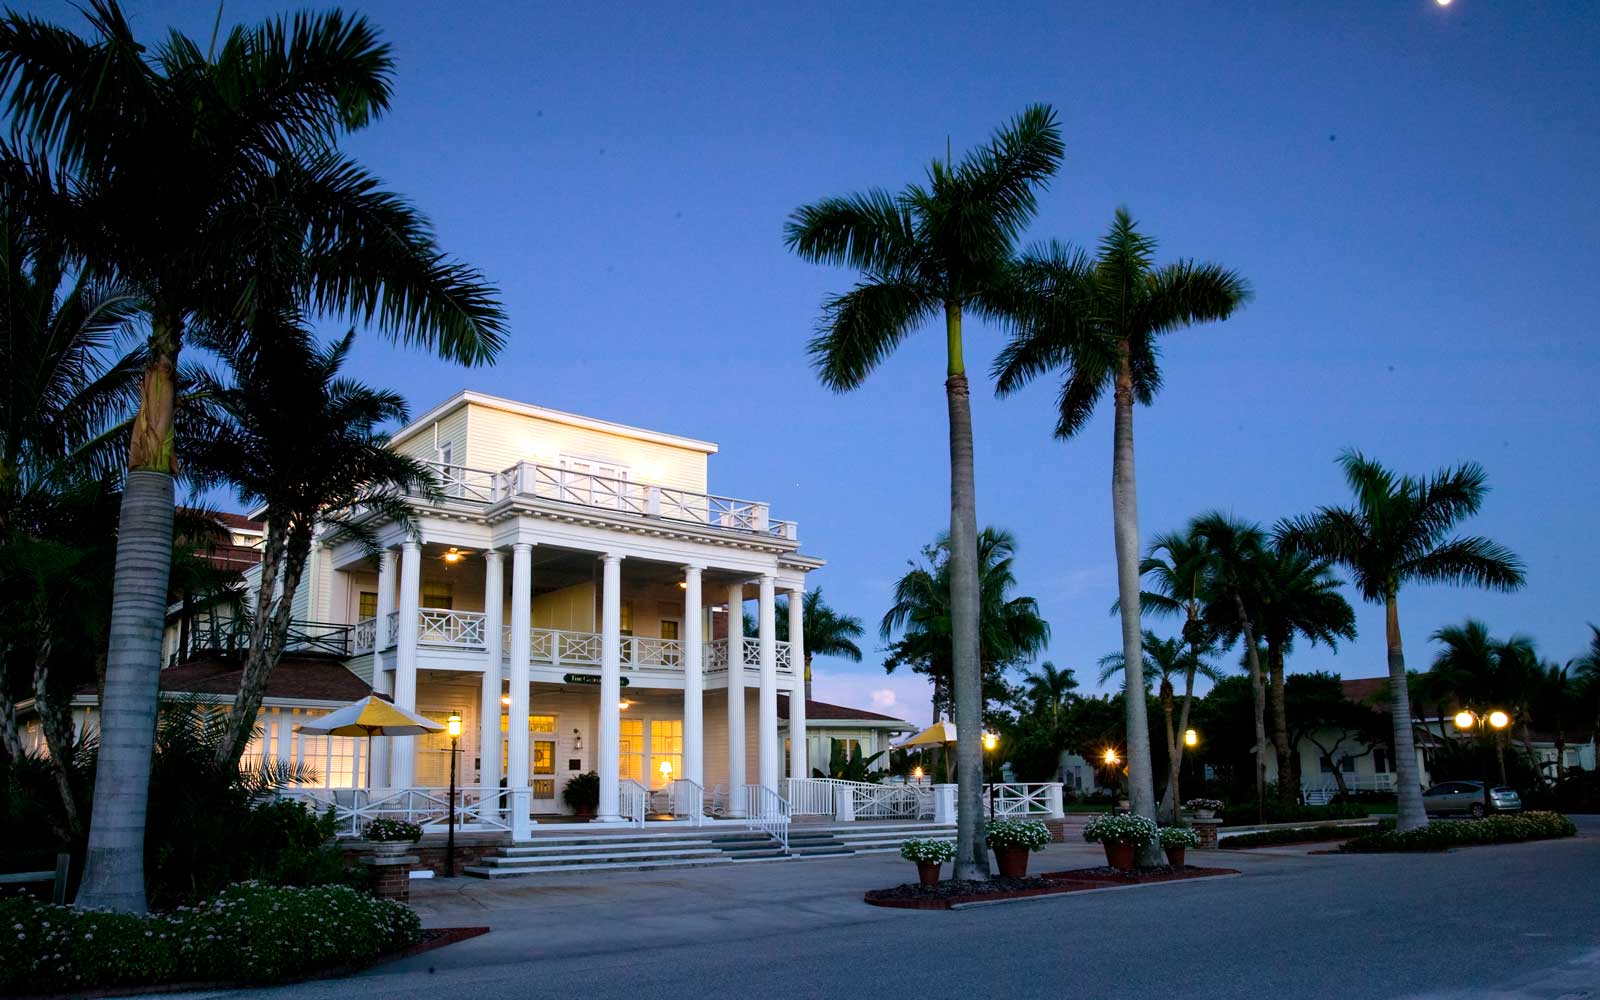 Exterior of the famous Gasparilla Inn Hotel in Florida